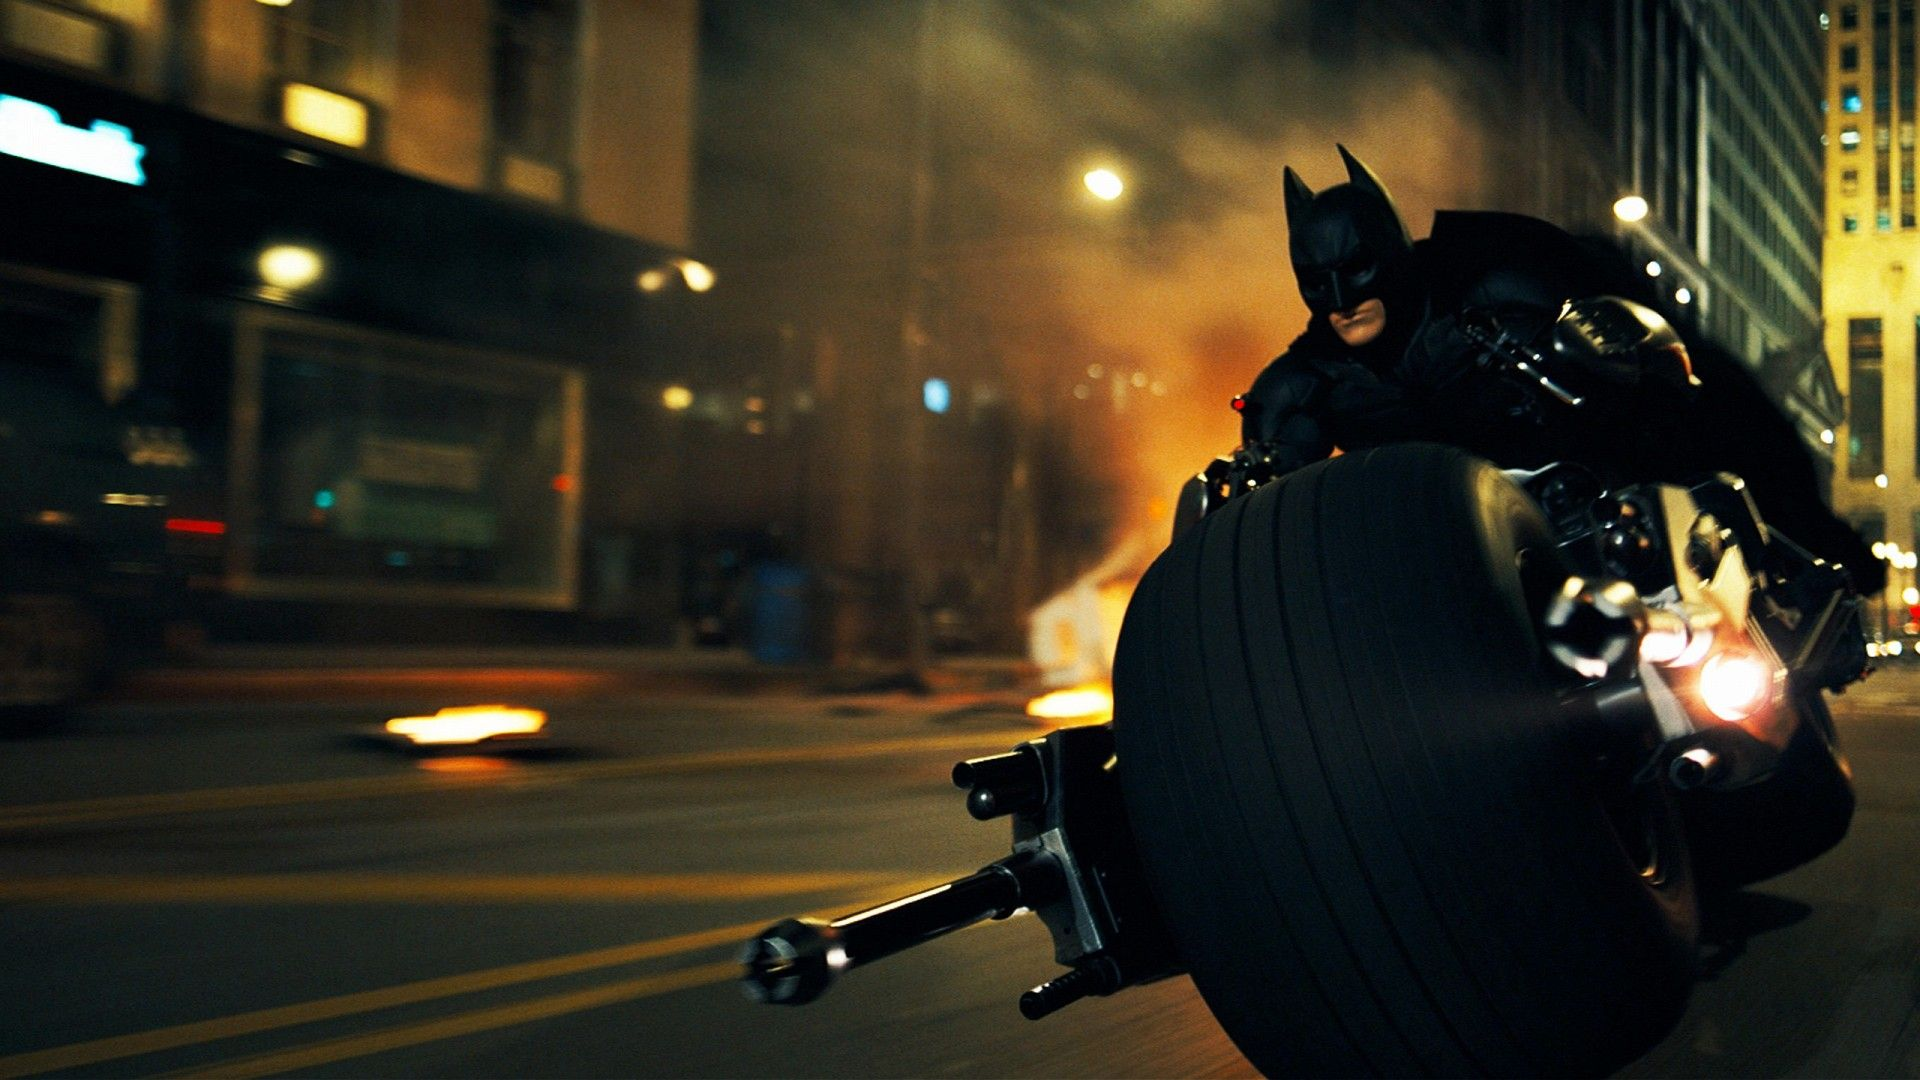 Batman The Dark Knight Rises Hd Wallpapers 1080p